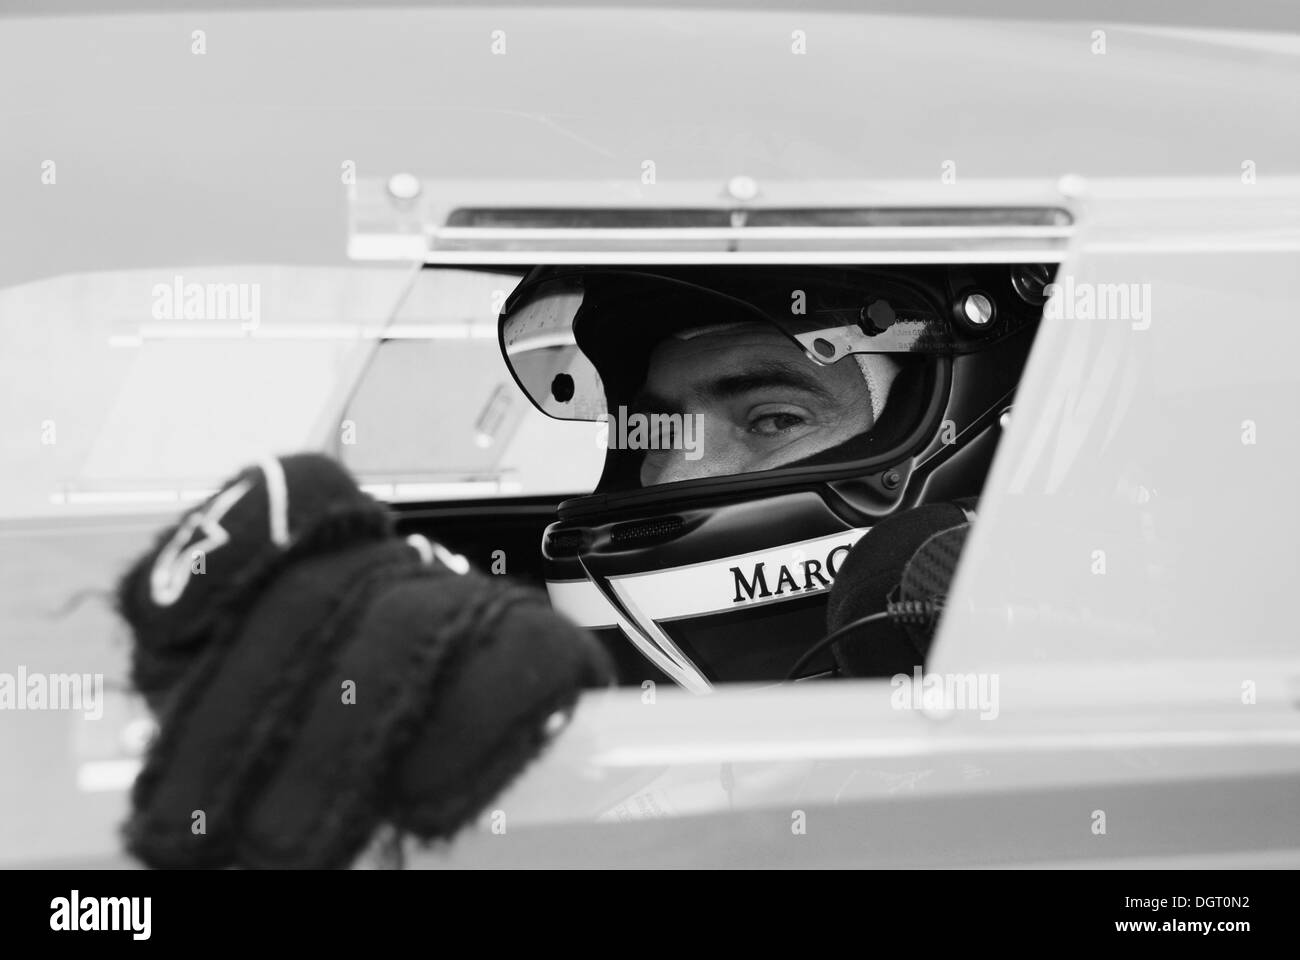 Marc Hayek, racing driver of the Lamborghini Blancpain Super Trofeo and CEO of the Blancpain luxury watch maker - Stock Image